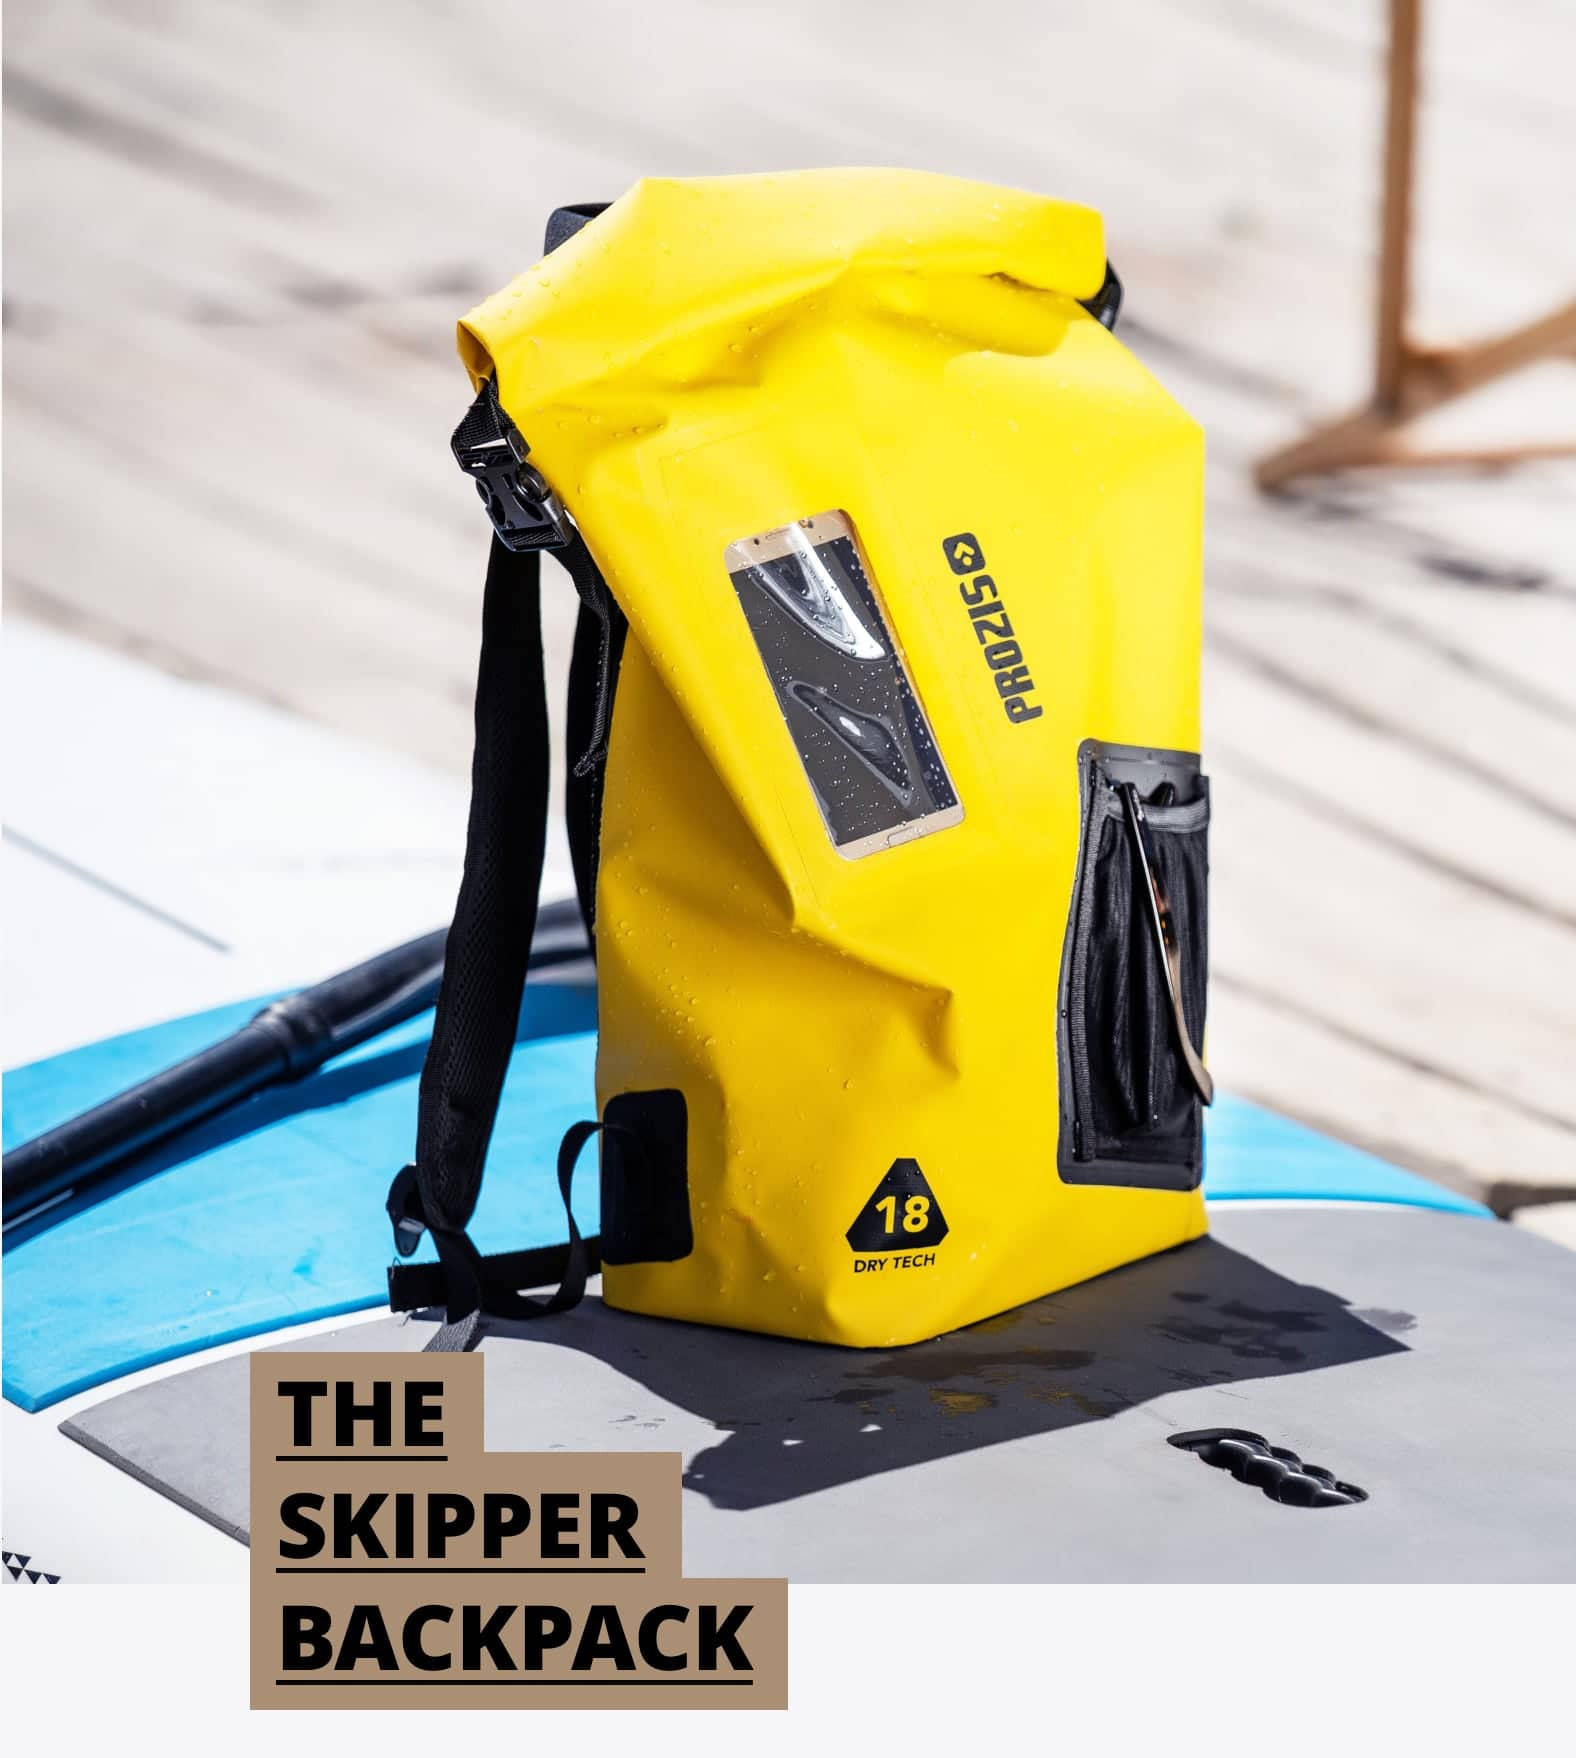 The Skipper Backpack